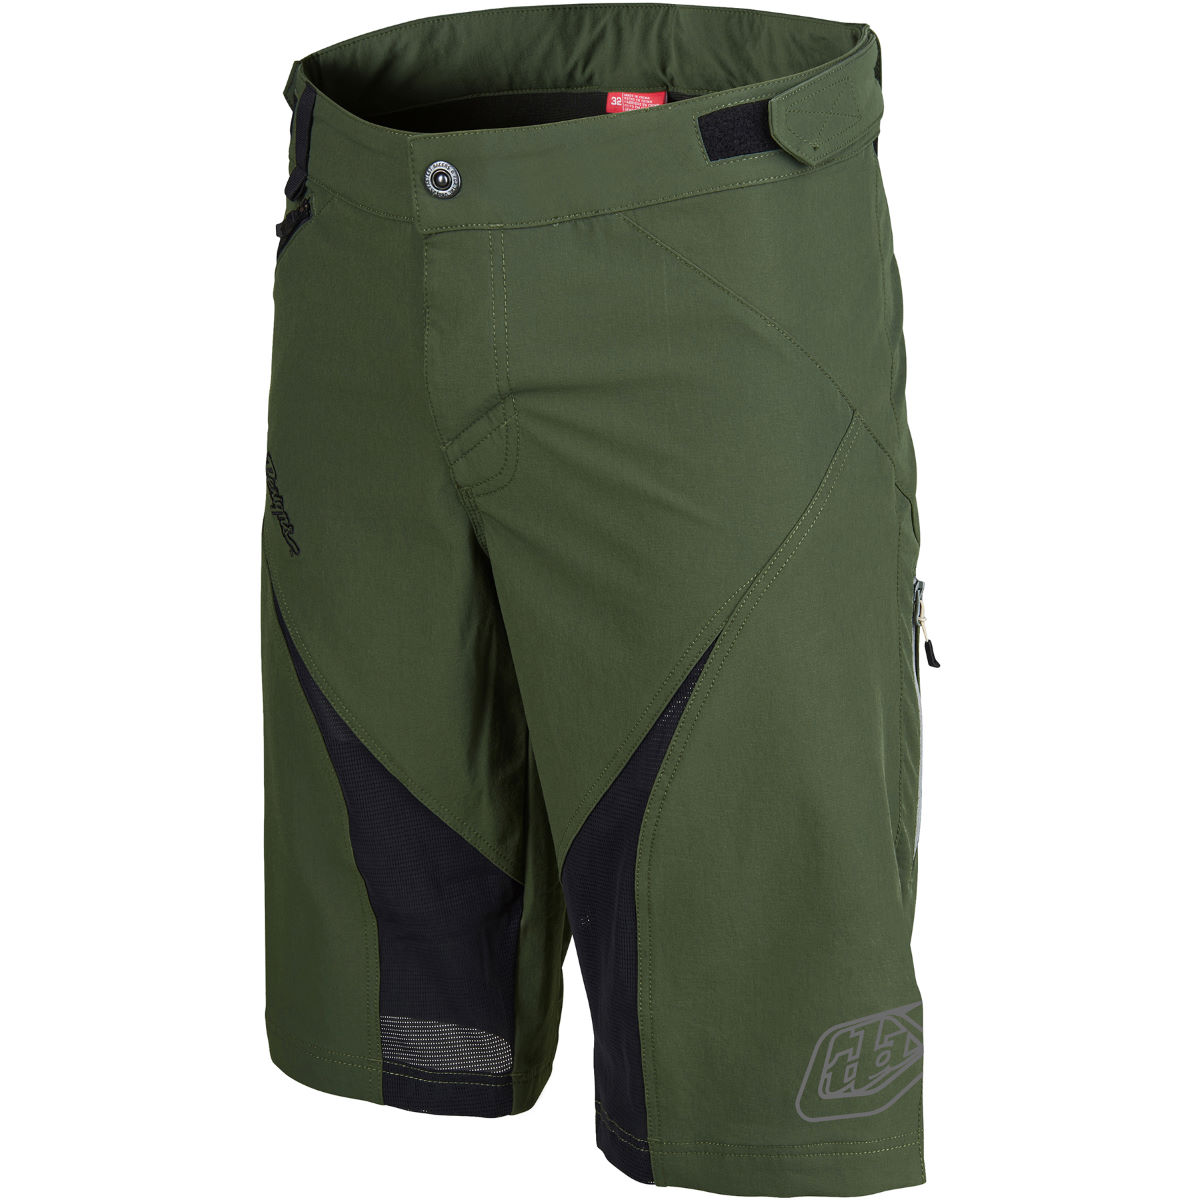 Short Troy Lee Designs Terrain - 28 Army Green Shorts VTT